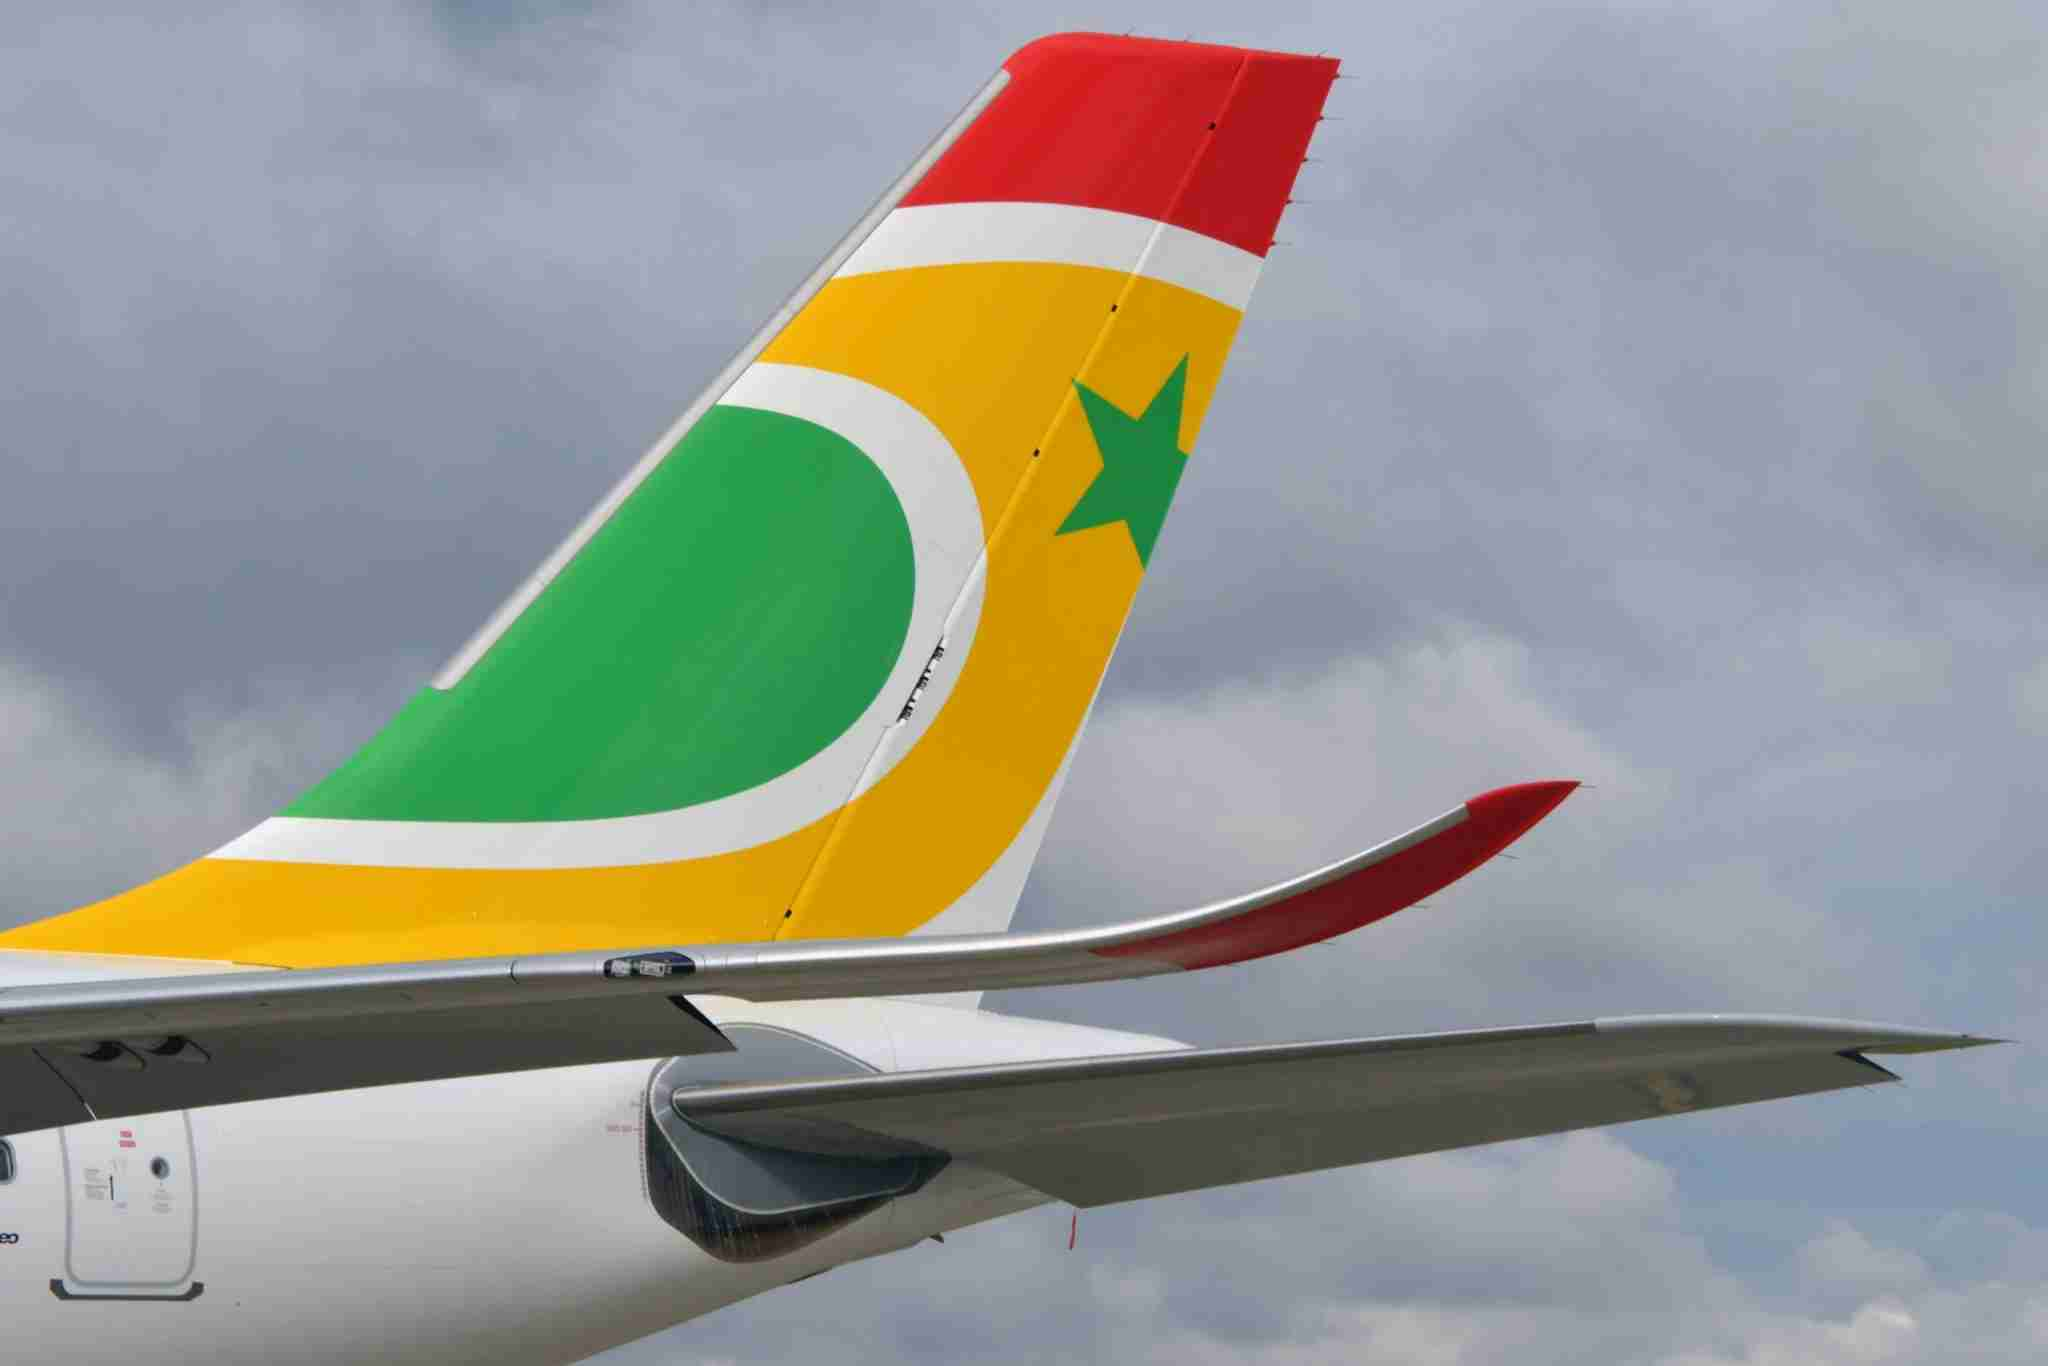 The tail of an Air Senegal Airbus A330-900 aircraft is seen at Airbus delivery center in France. The carrier planes to use another Airbus jet, its yet-to-be-delivered A321neos, to fly to London. (Photo by Pascal Pavani/AFP via Getty Images)